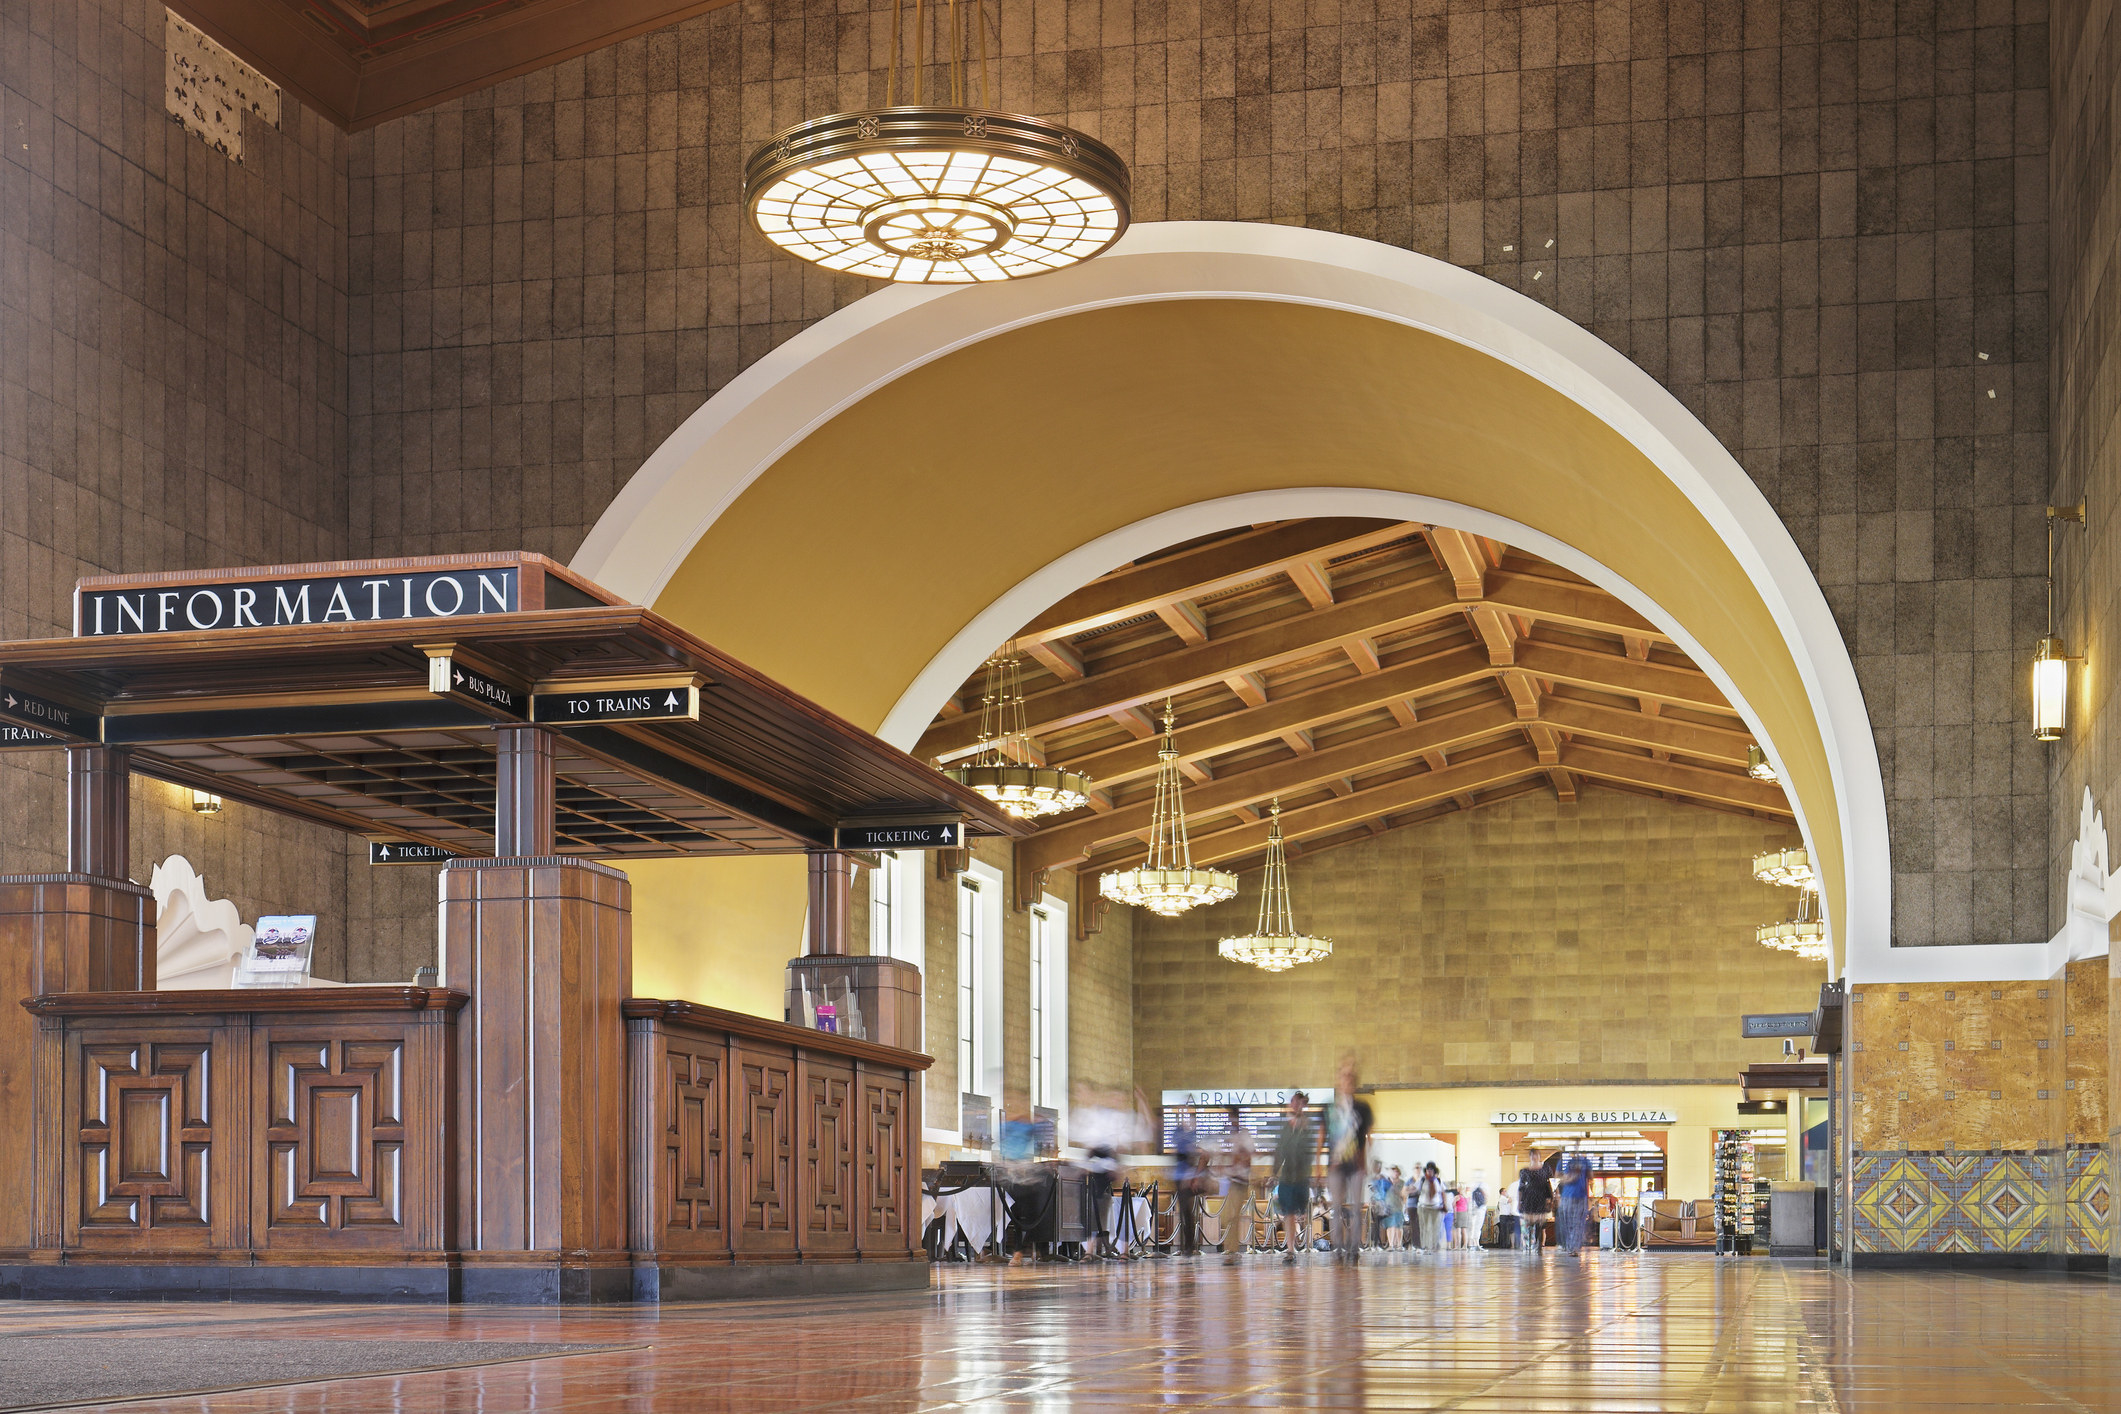 Union Station in LA